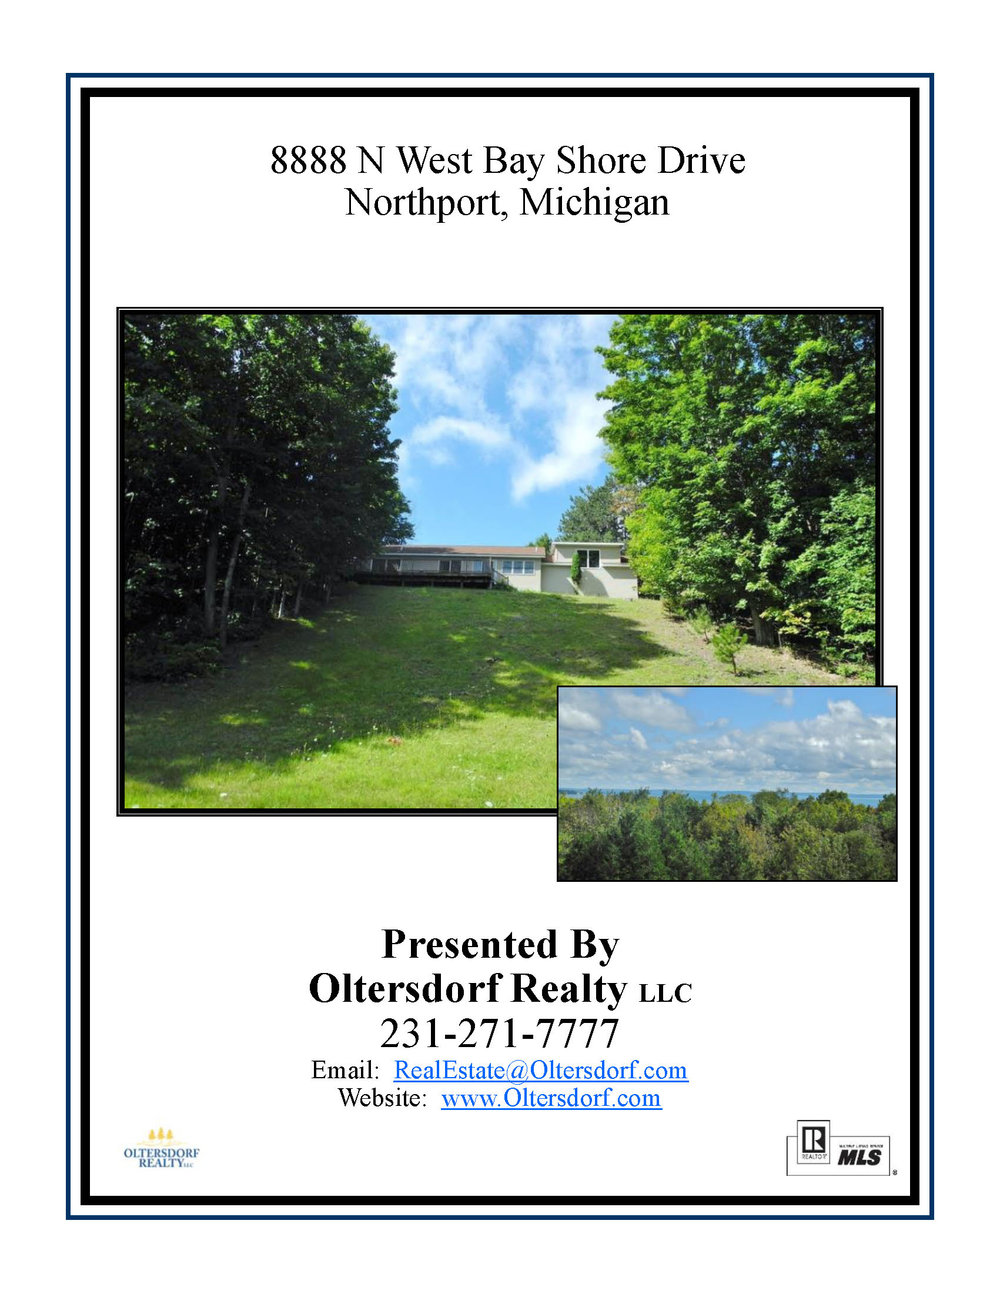 8888 NW Bay Shore Drive, Northport Marketing Packet - For Sale by Oltersdorf Realty LLC_Page_01.jpg